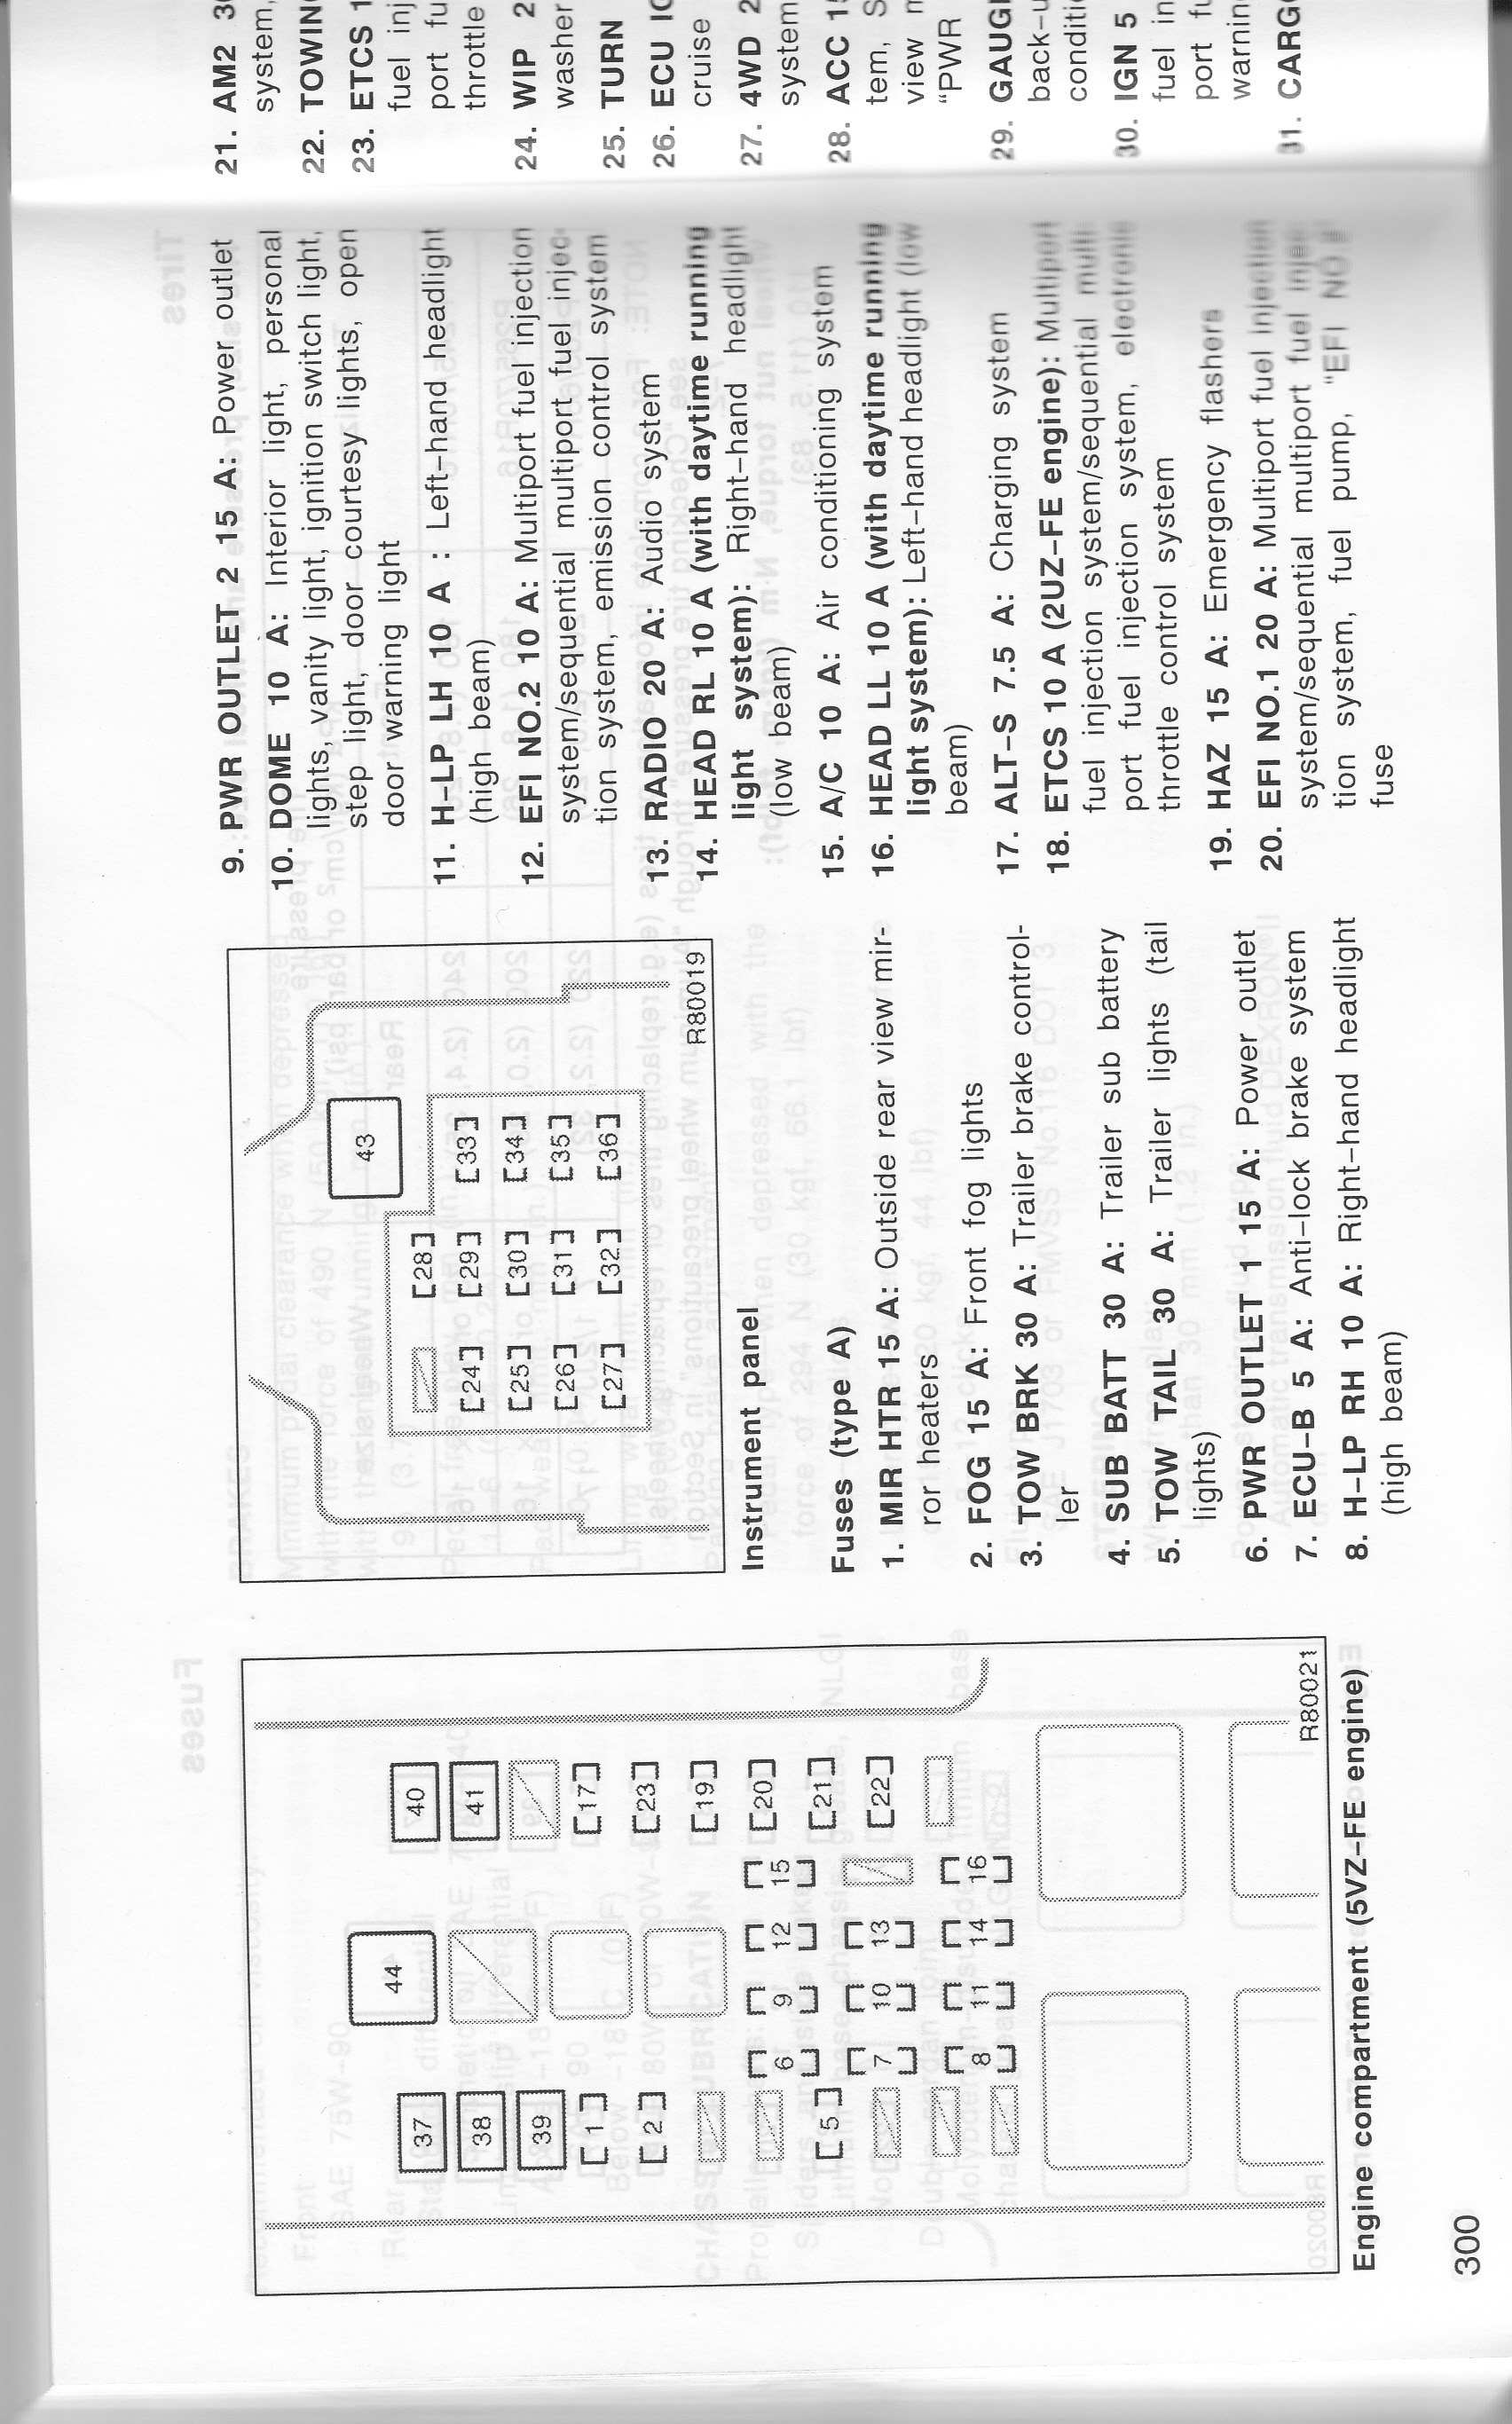 2001 toyota tundra parts diagram 2003 camry exhaust system fuse box free engine image for